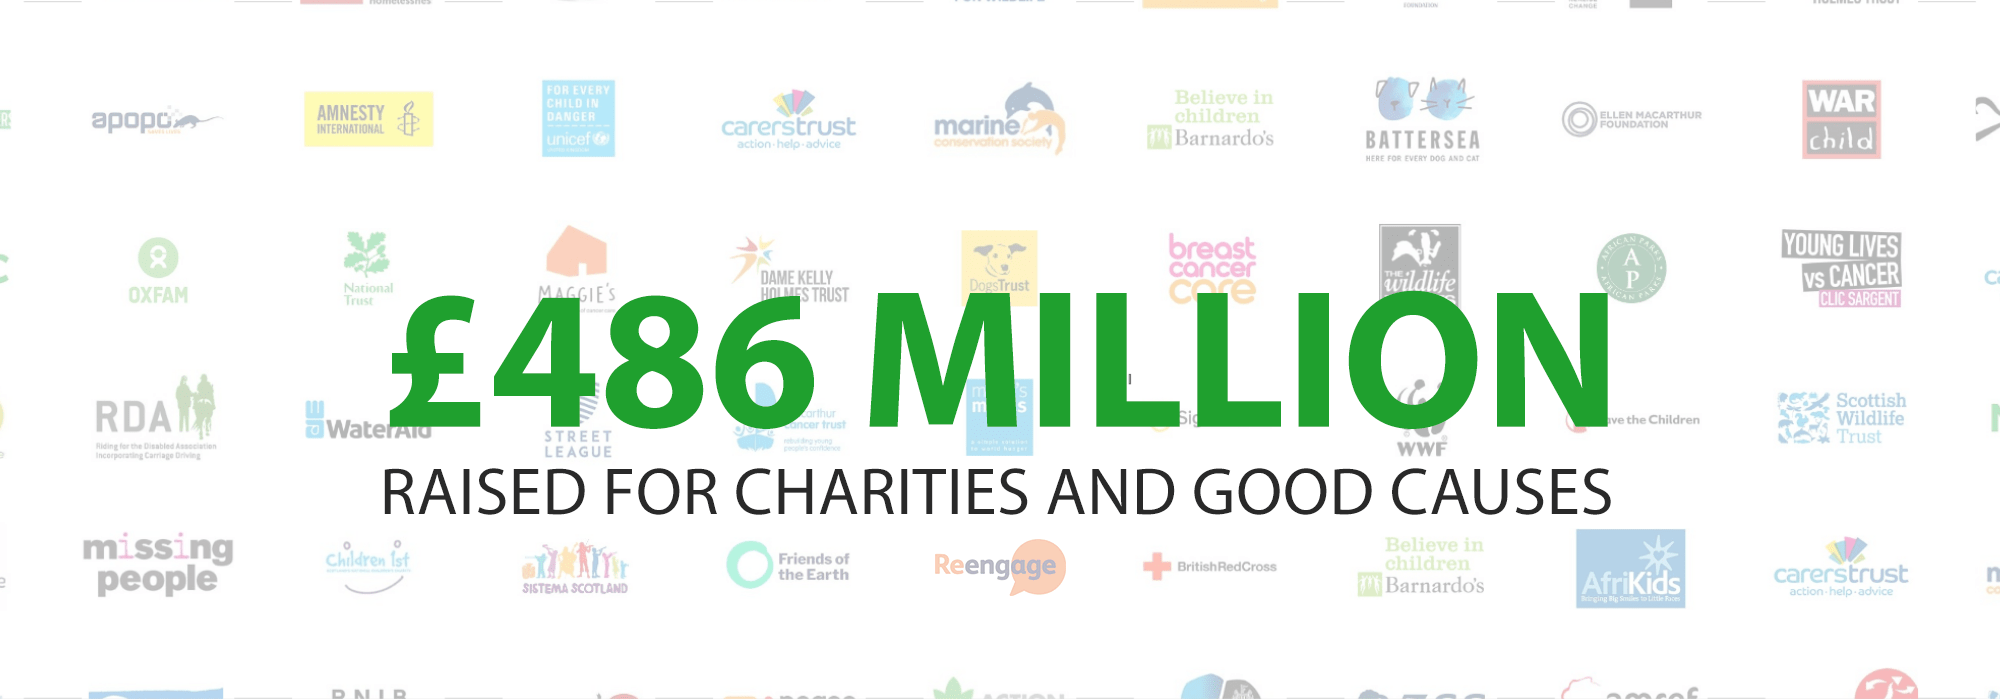 Helping Charities And Good Causes People S Postcode Lottery